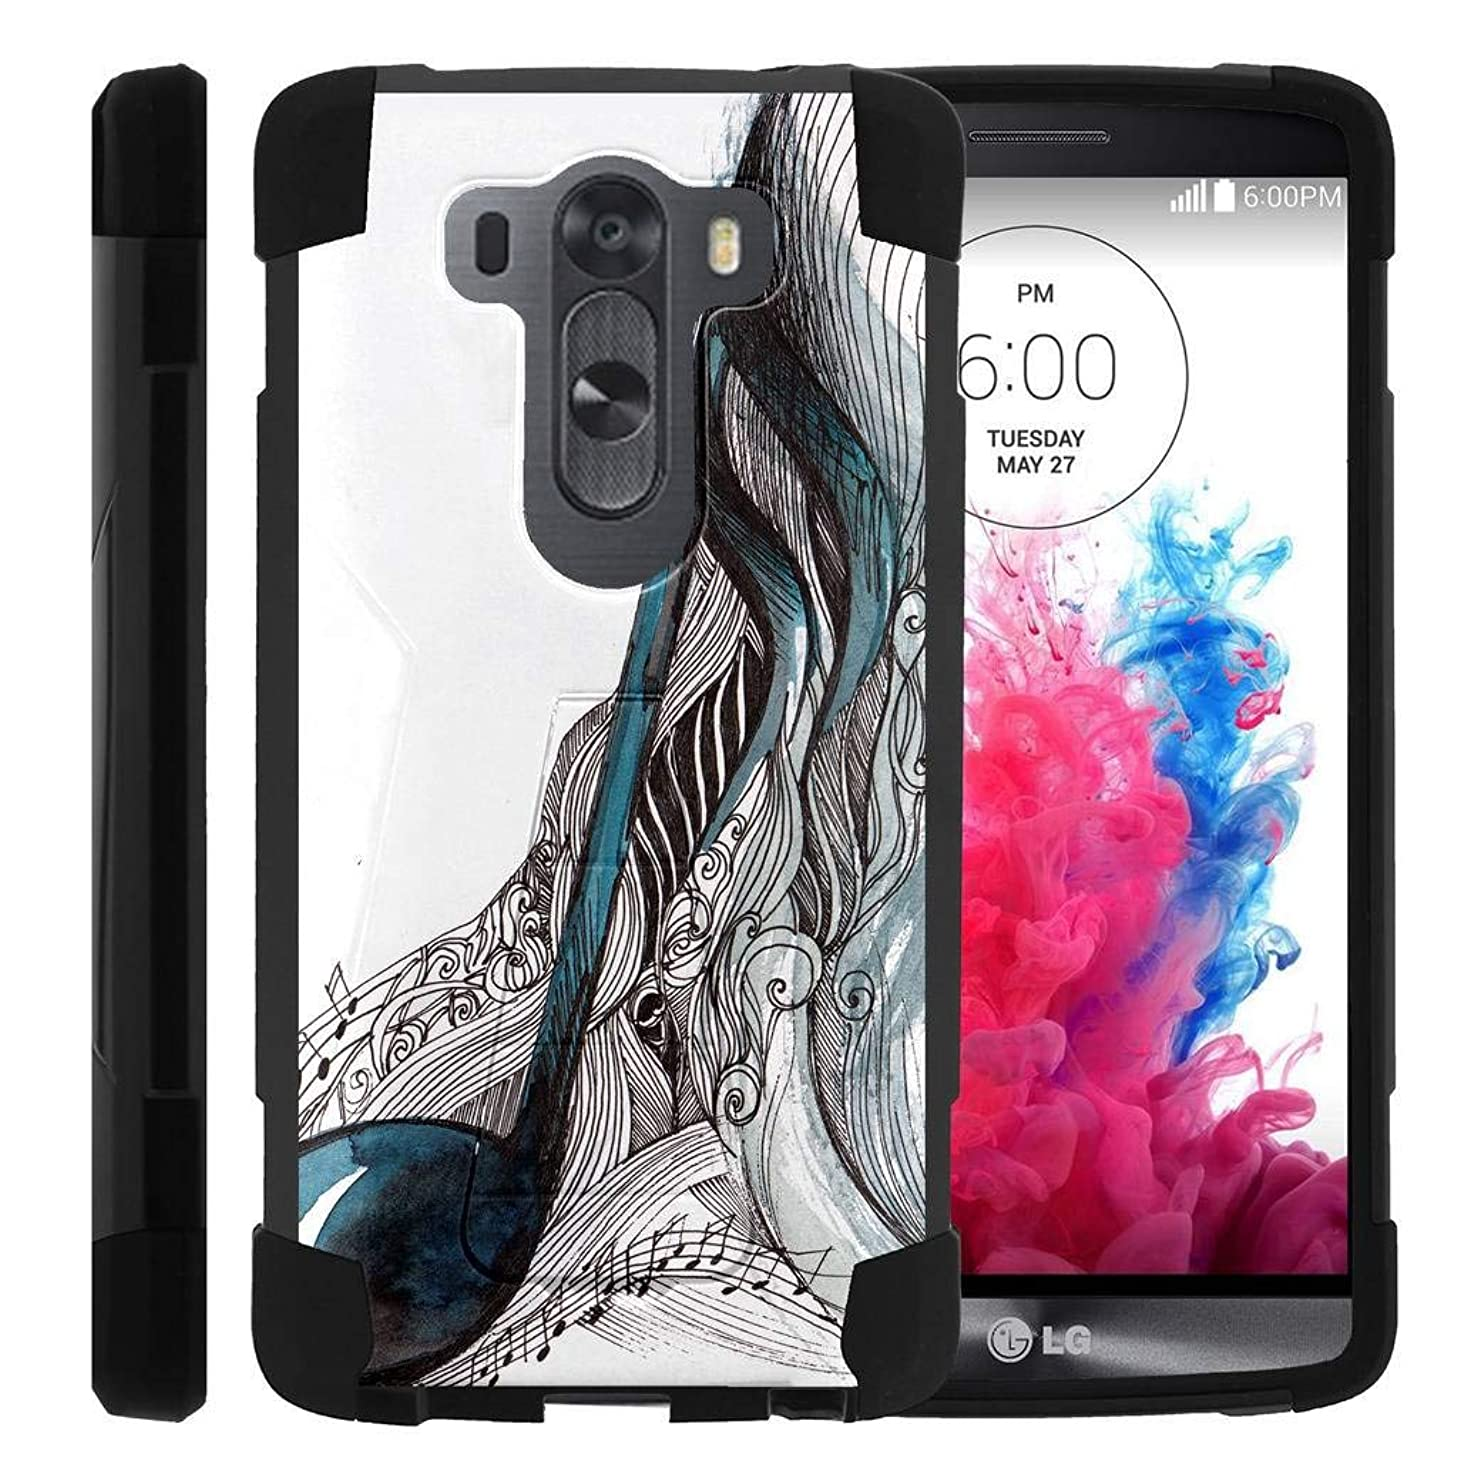 TurtleArmor | Compatible for LG V10 Case | LG G4 Pro Case [Dynamic Shell] Absorber Impact Shock Shell Cover Protector Silicone Hard Kickstand Music Design - Artistic Music Notes